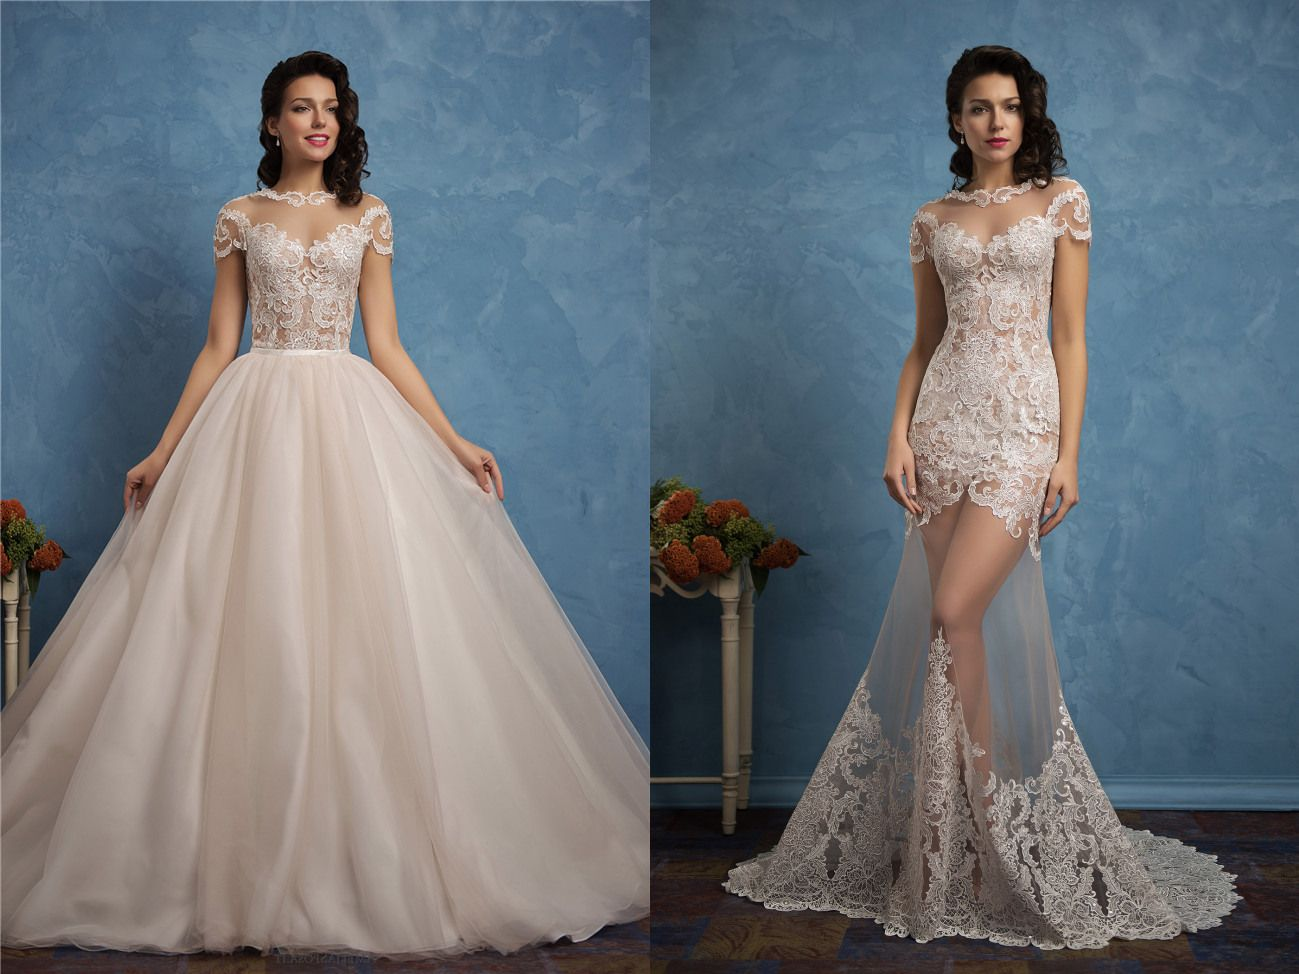 Unique Ball Gown Illusion Neckline Tulle Lace Sleeved Wedding Dress Detachable Skirt Wedding Gowns Wedding Dresses Wedding Dress Sleeves